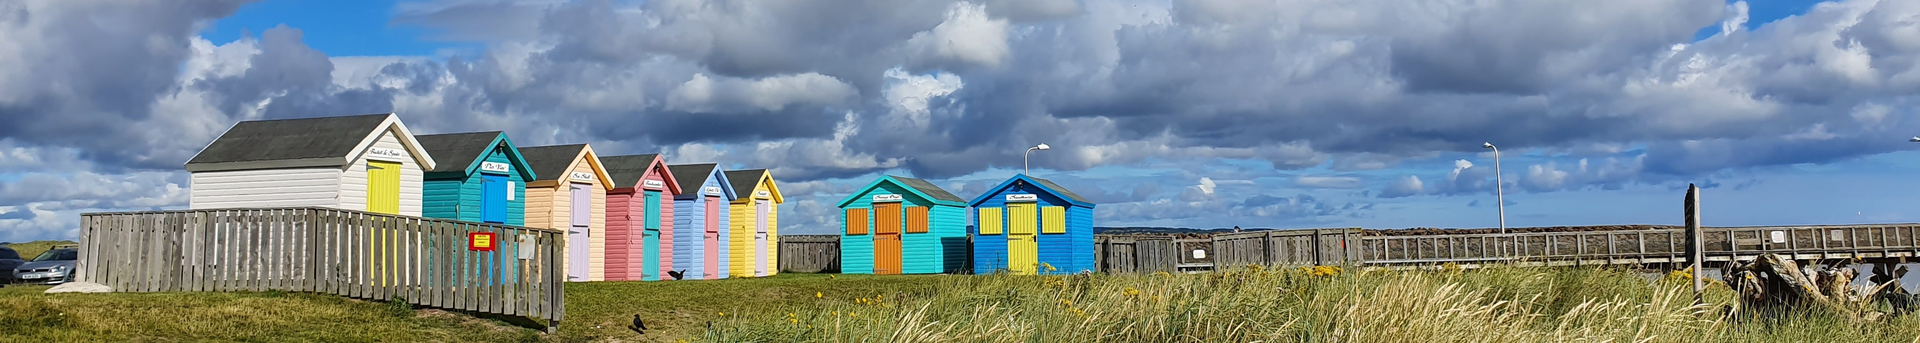 Beach huts at Amble, Northumberland